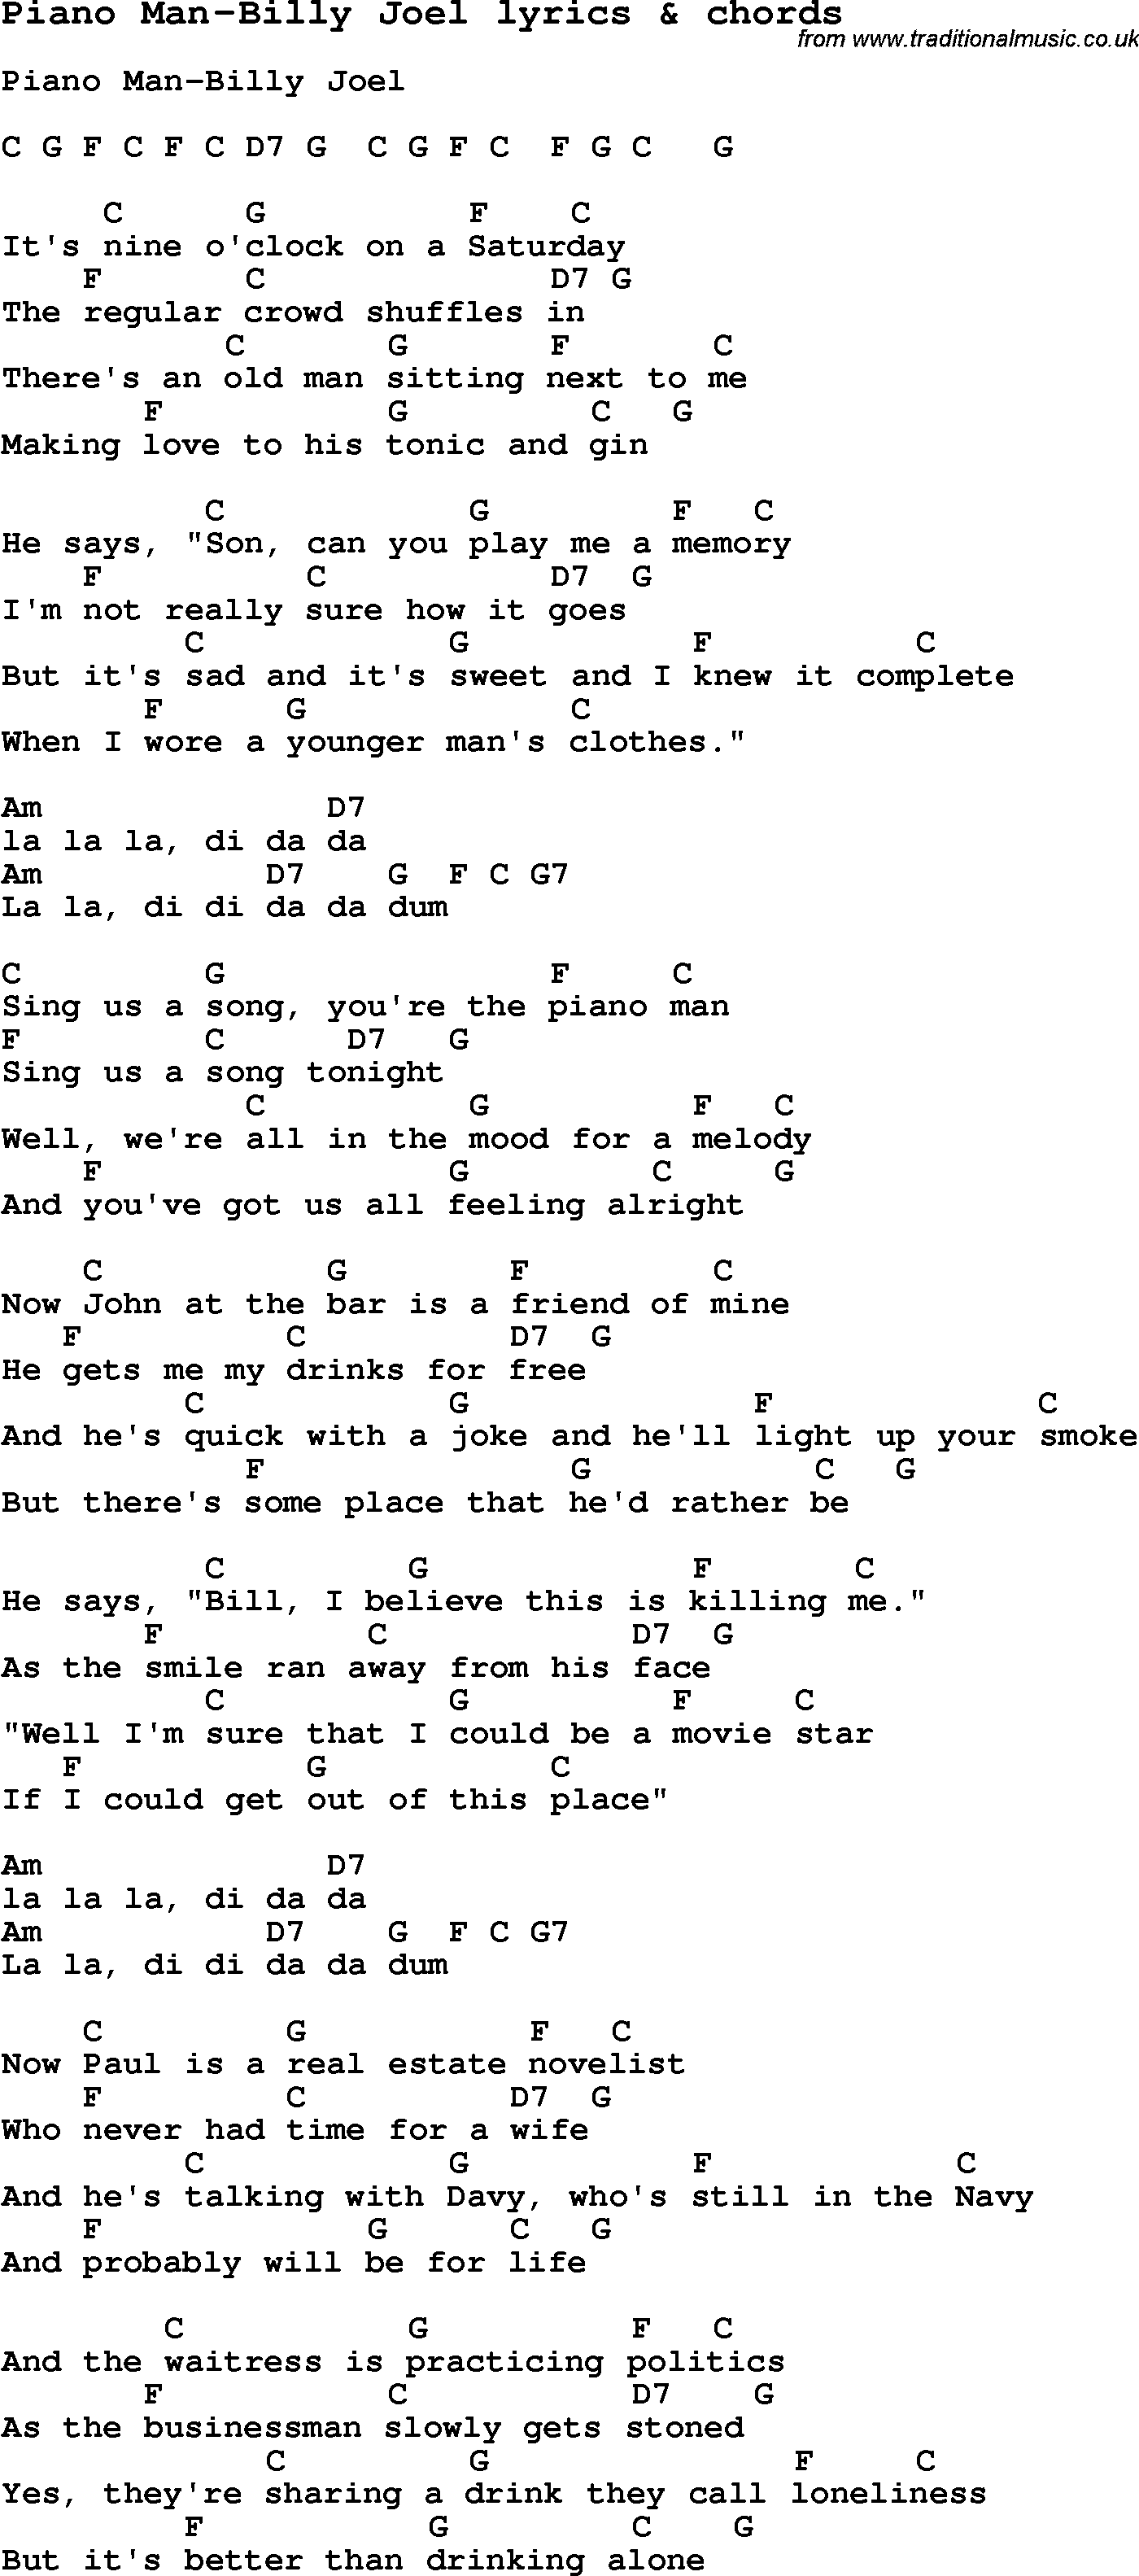 Love song lyrics forpiano man billy joel with chords love song lyrics for piano man billy joel with chords for ukulele guitar hexwebz Choice Image